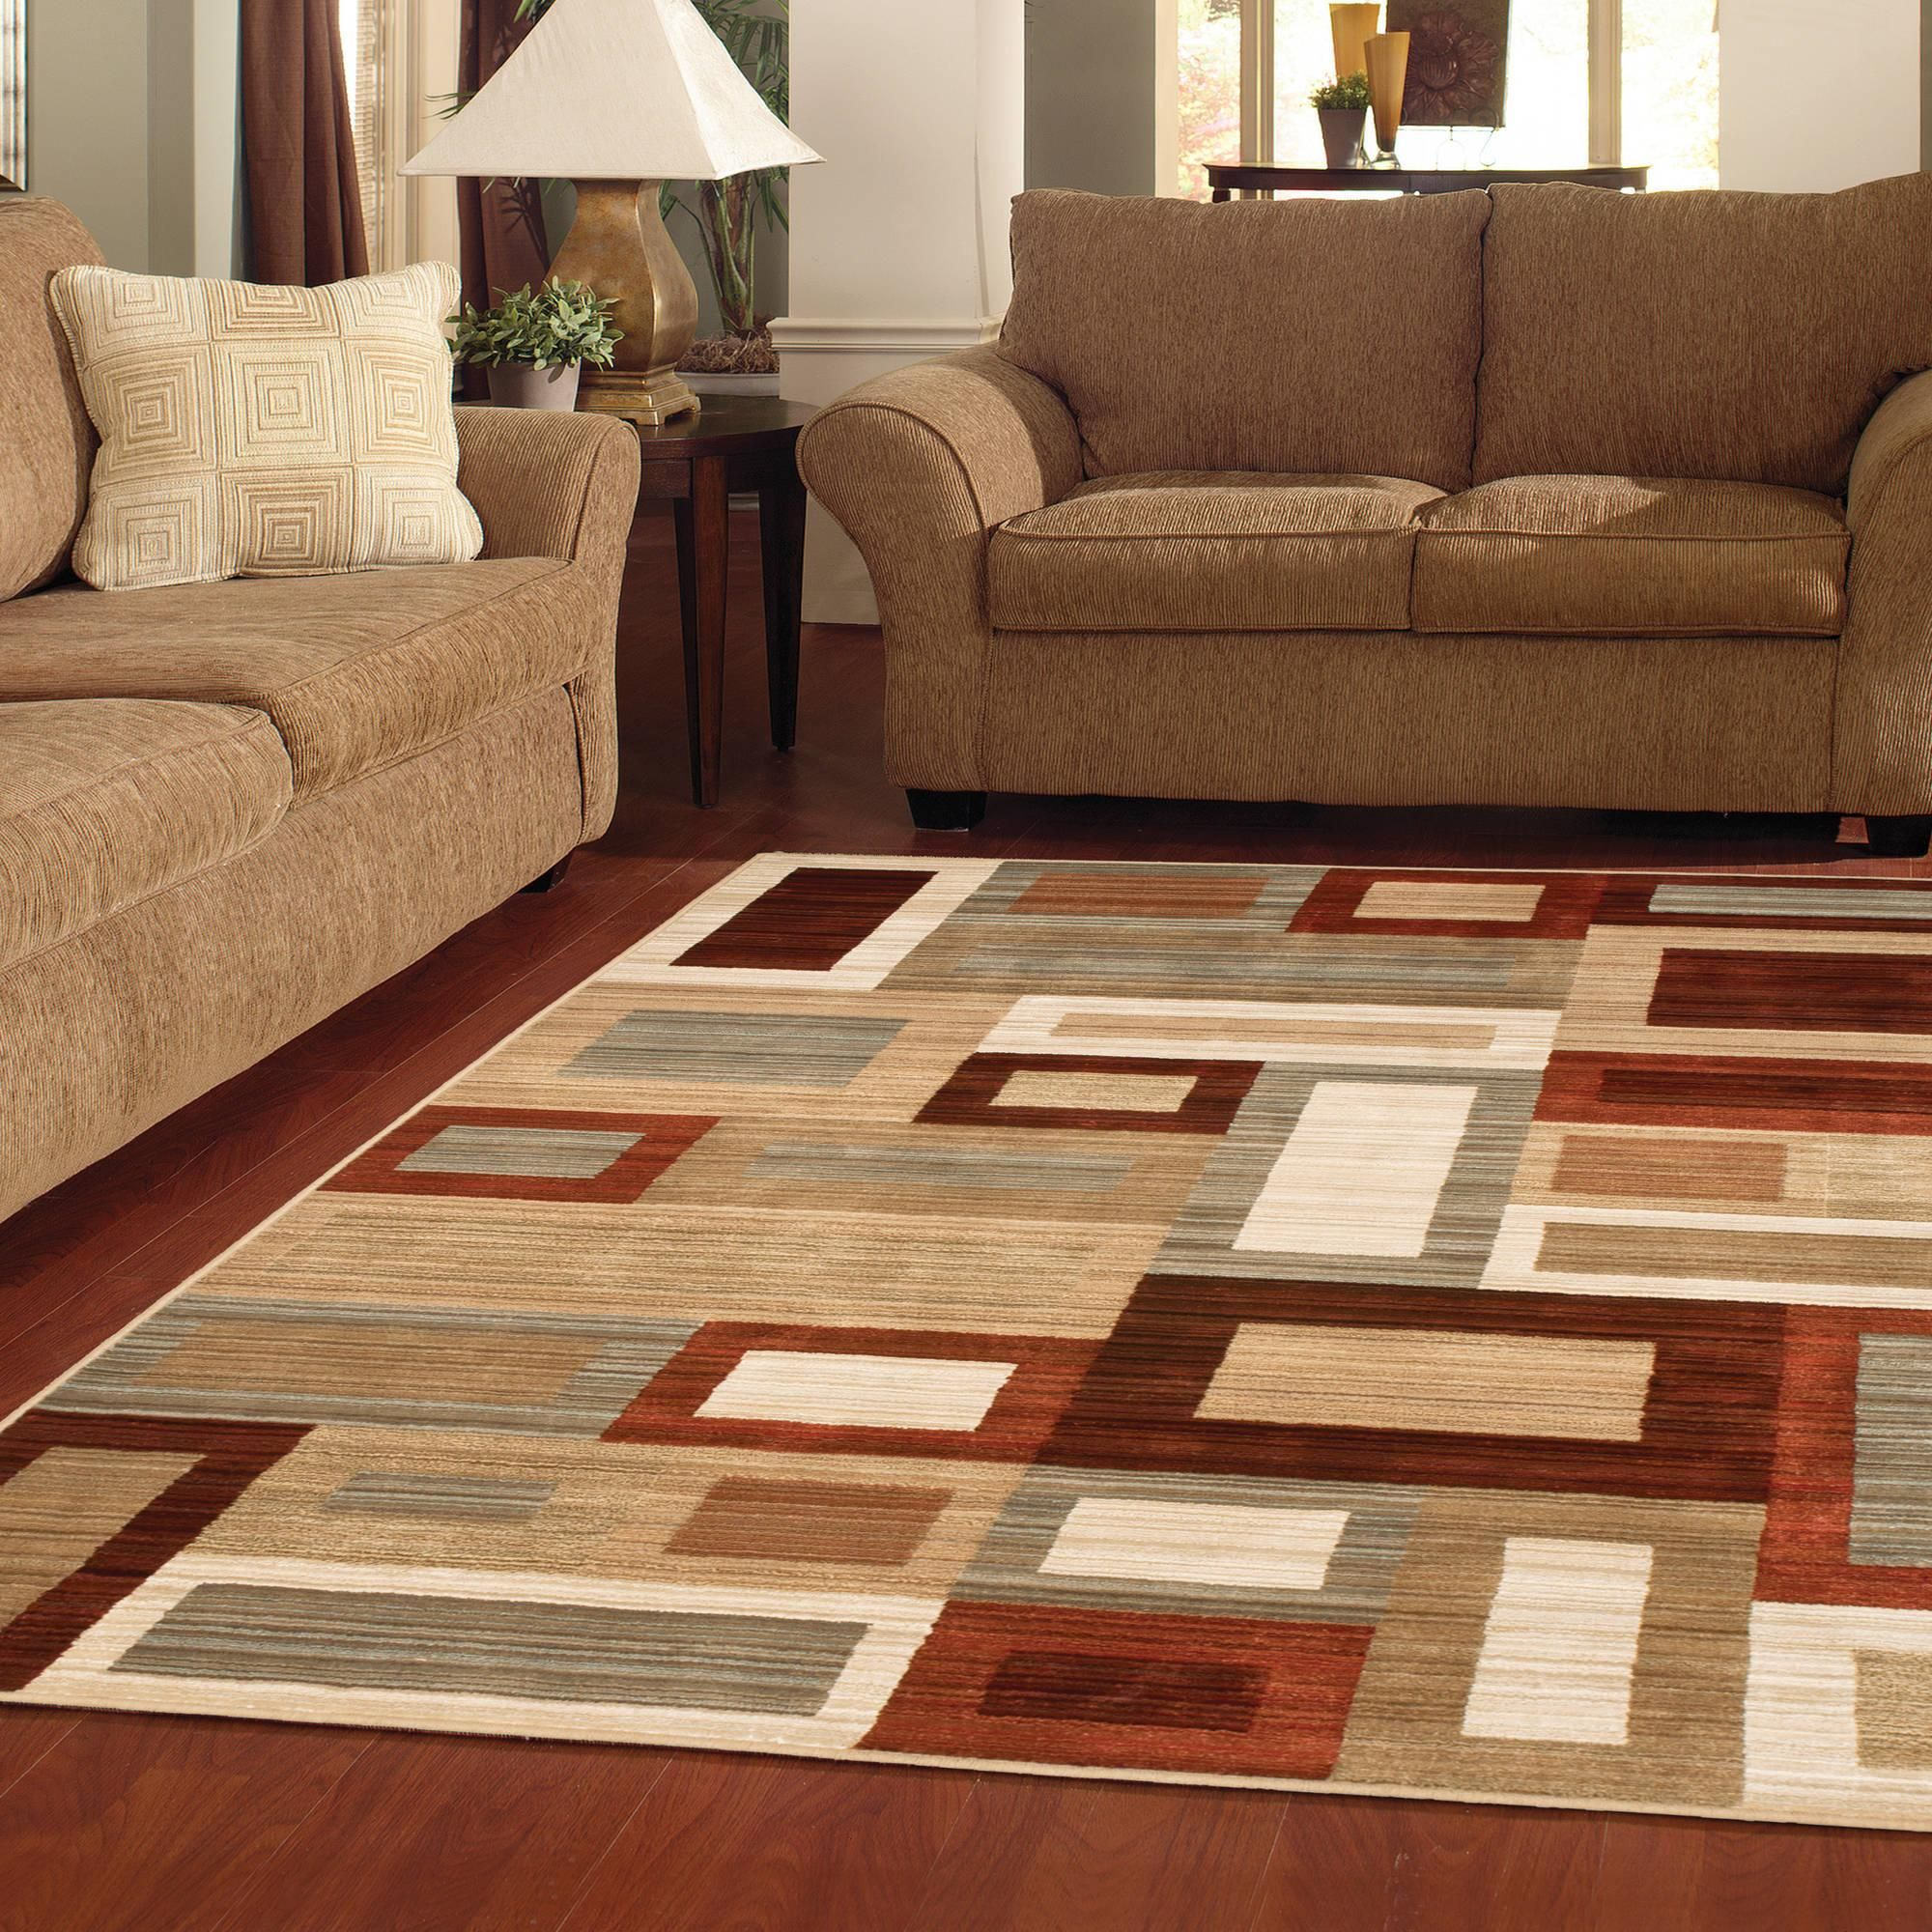 Awesome 5 7 Area Rugs Reference Beautiful Home Interior